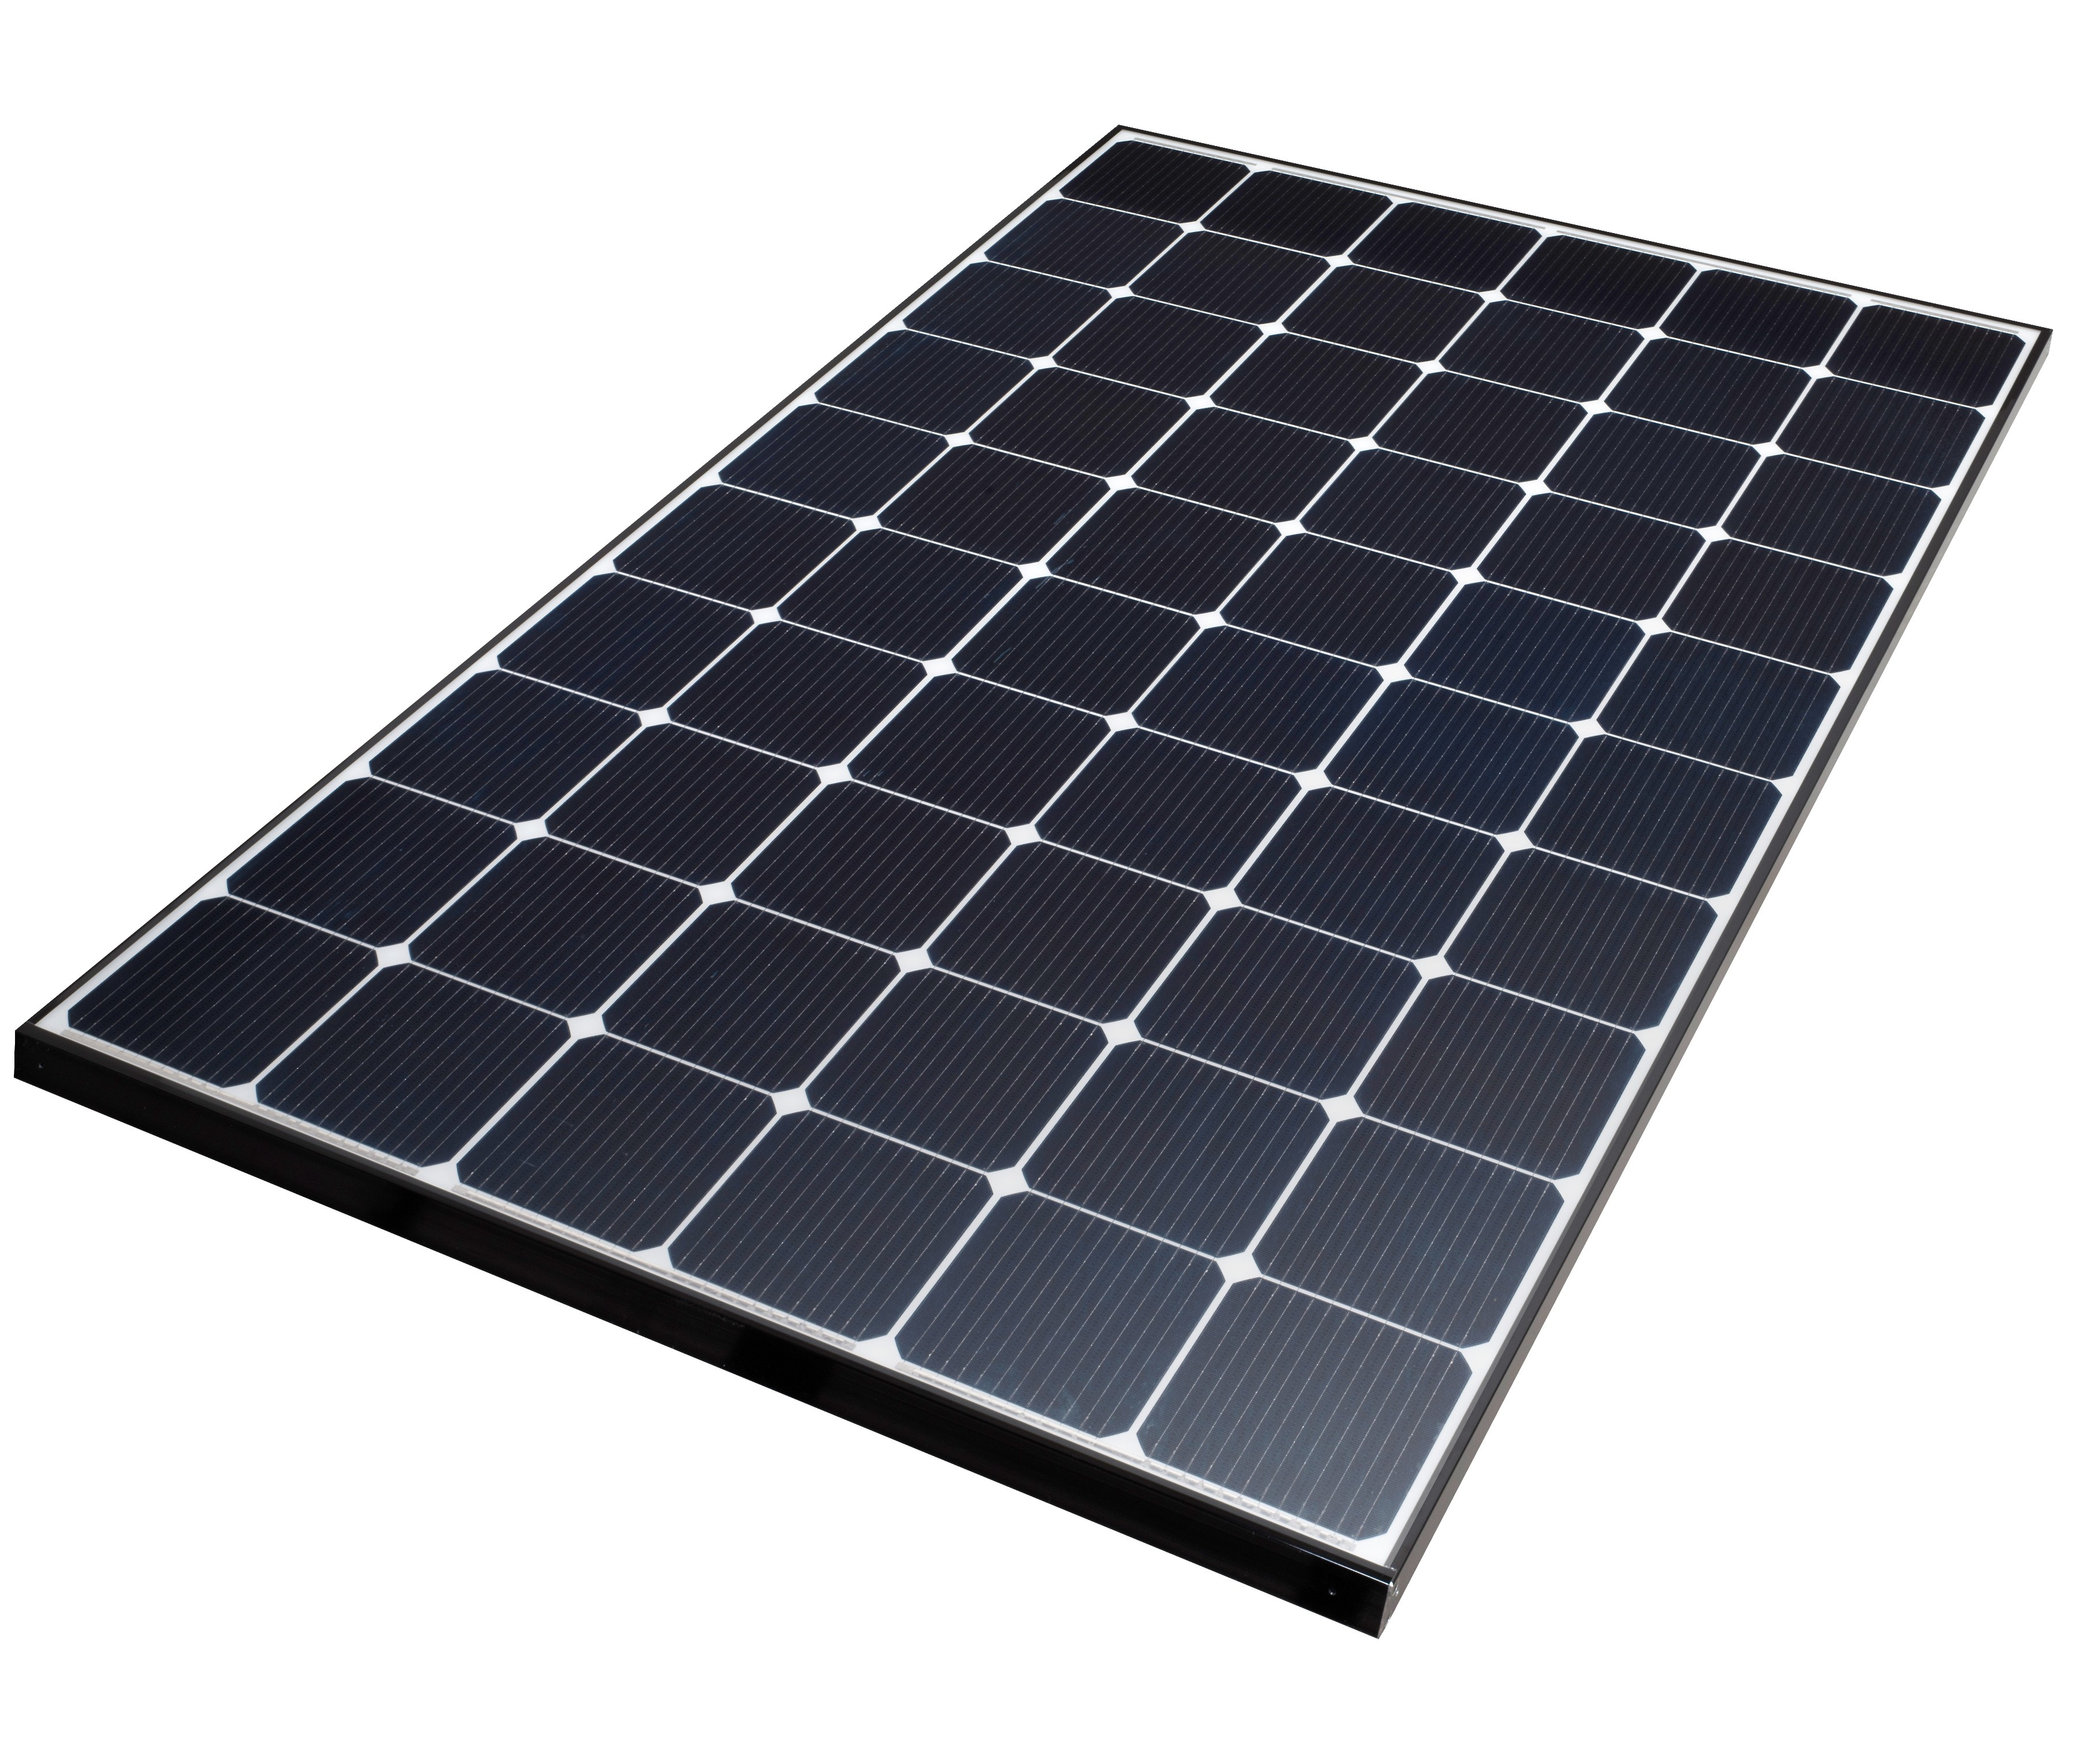 LG UNVEILS ITS MOST EFFICIENT SOLAR PANEL TO DATE AT INTERSOLAR EUROPE ...